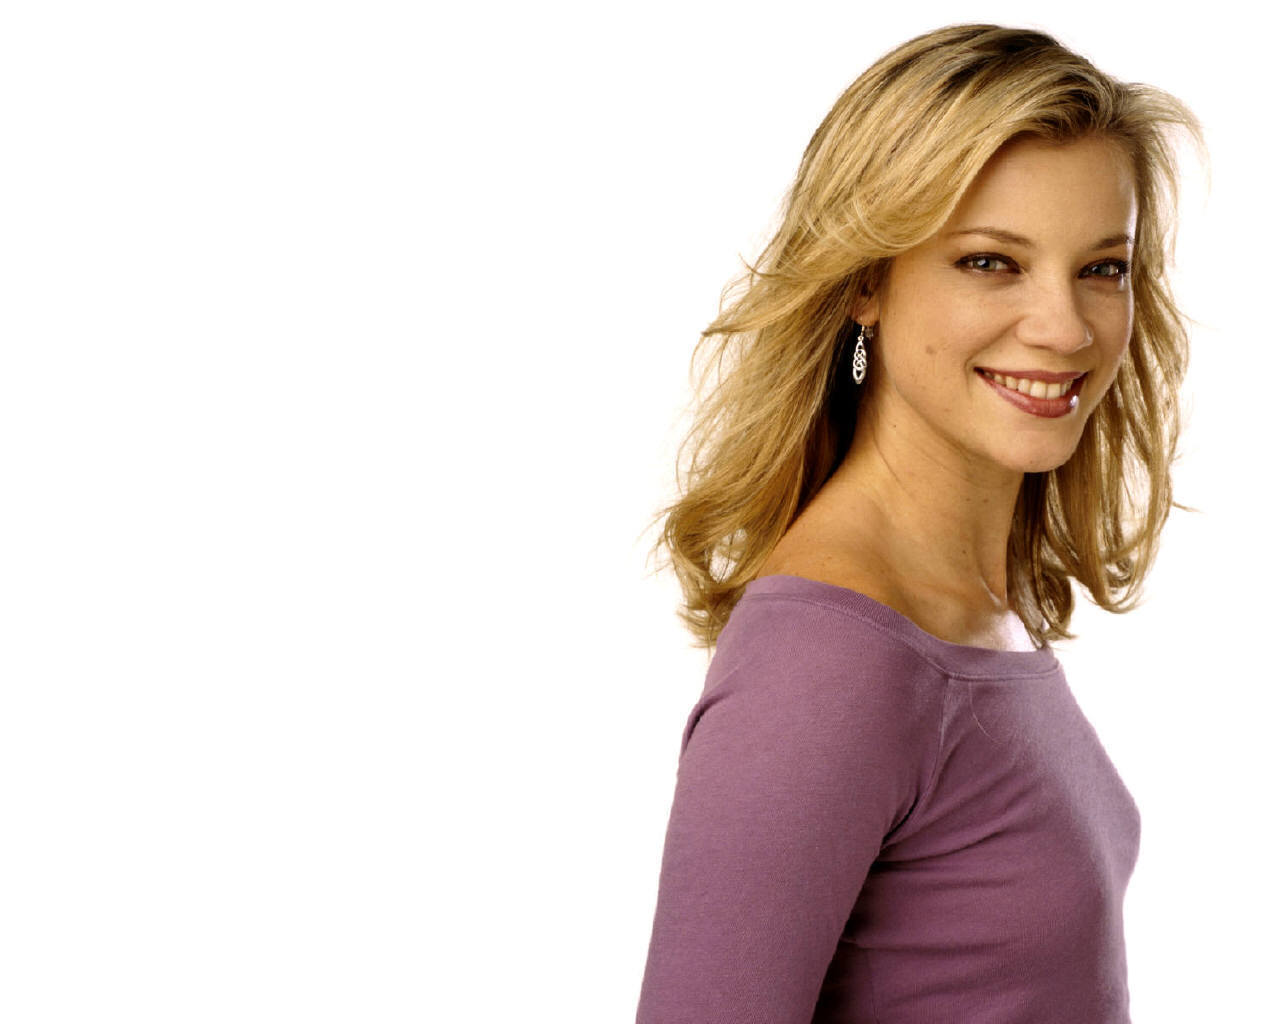 1280x1024 - Amy Smart Wallpapers 3